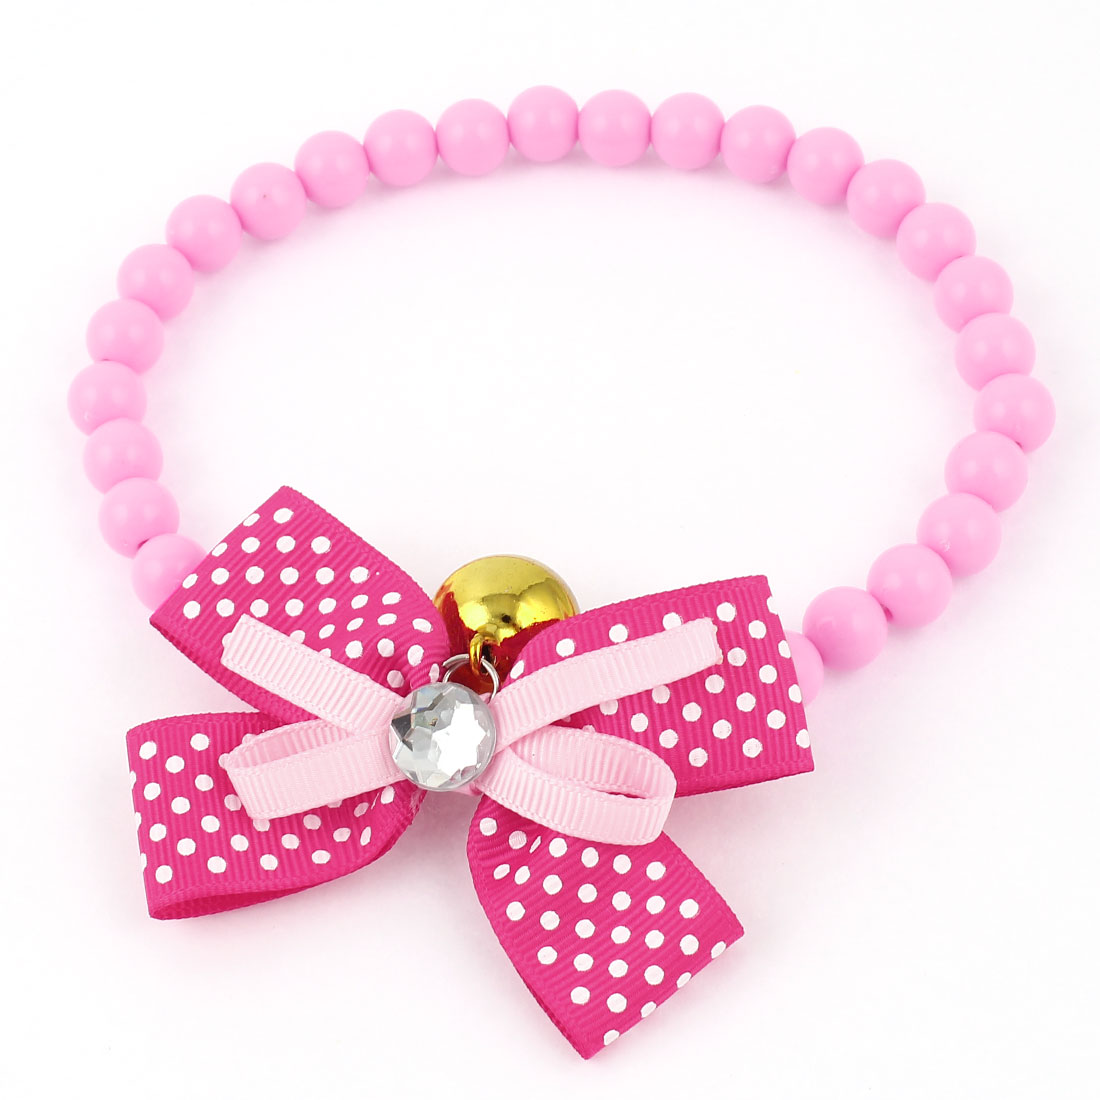 Metal Bell Pendant Bowtie Accent Pet Dog Plastic Beads Collar Necklace Pink Fuchsia M